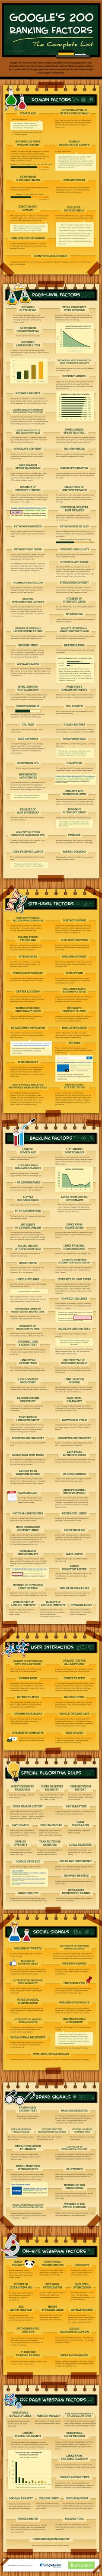 ranking_factors_infographic_2.jpg (800×20112)